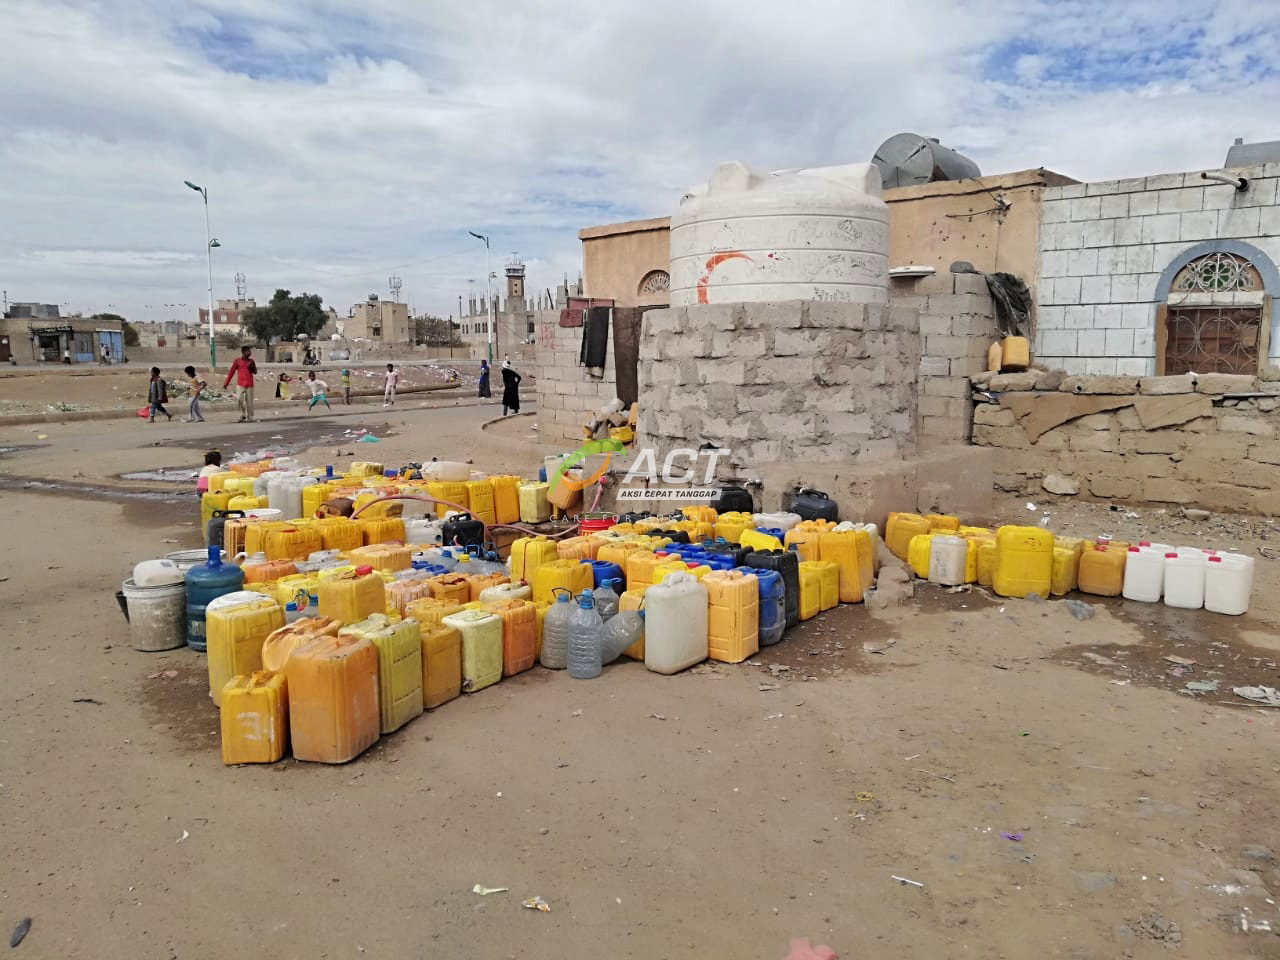 Drought Afllicts Civilians in Yemen Throughout the Year's image